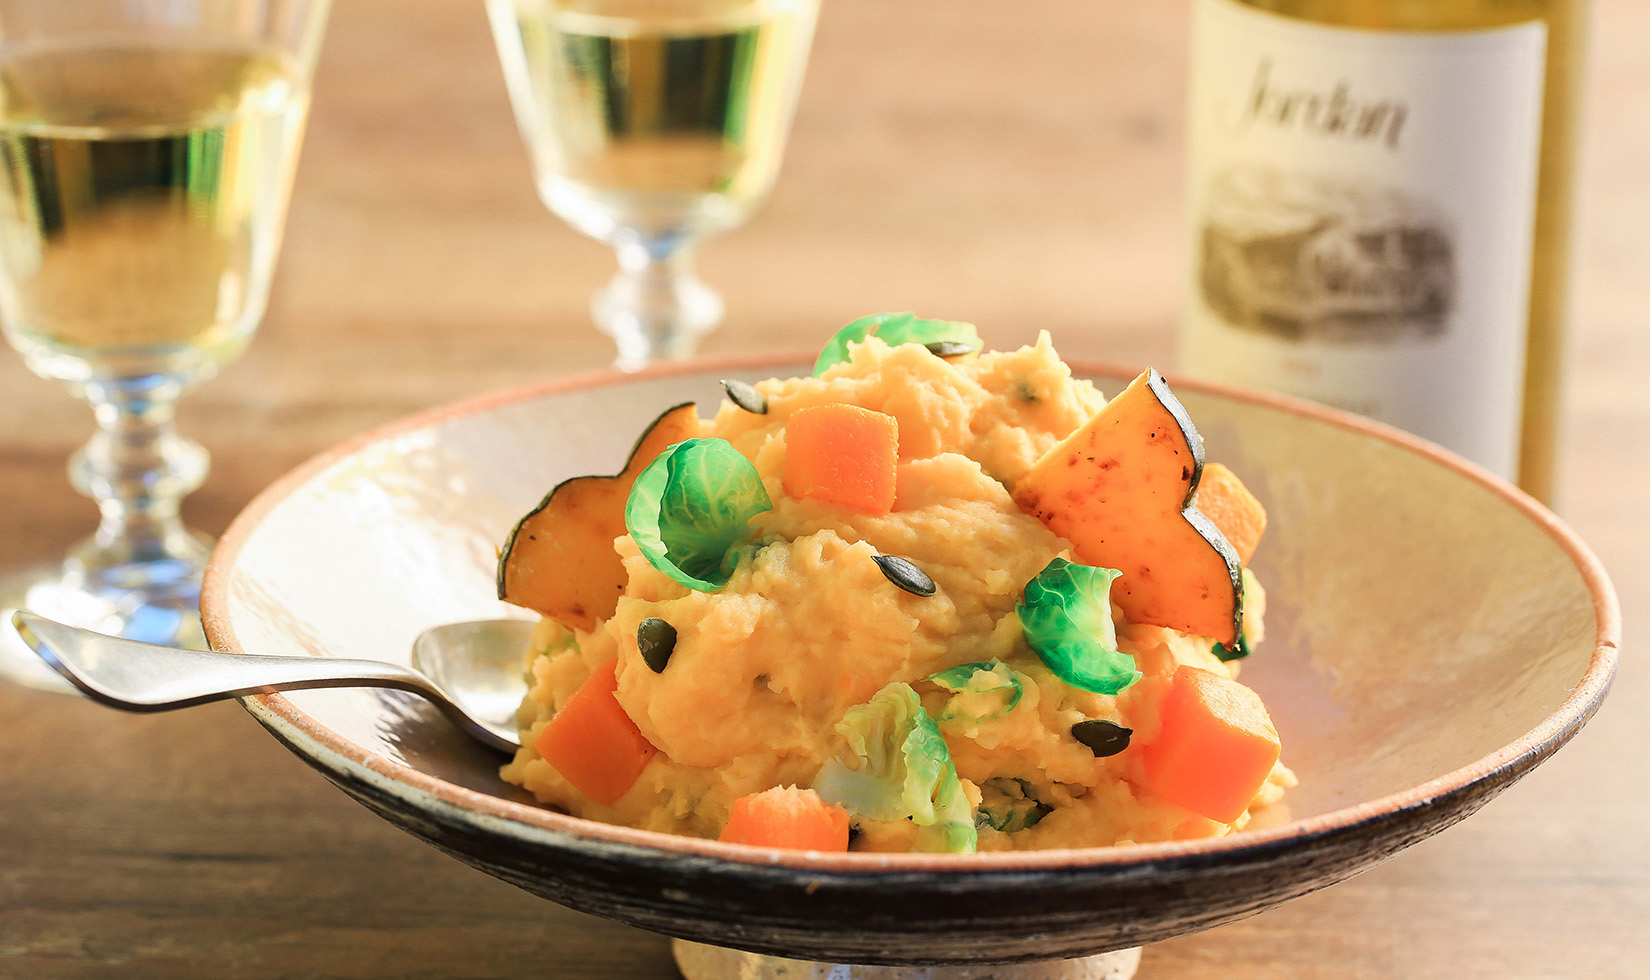 Butternut Squash Mashed Potatoes with Jordan Chardonnay